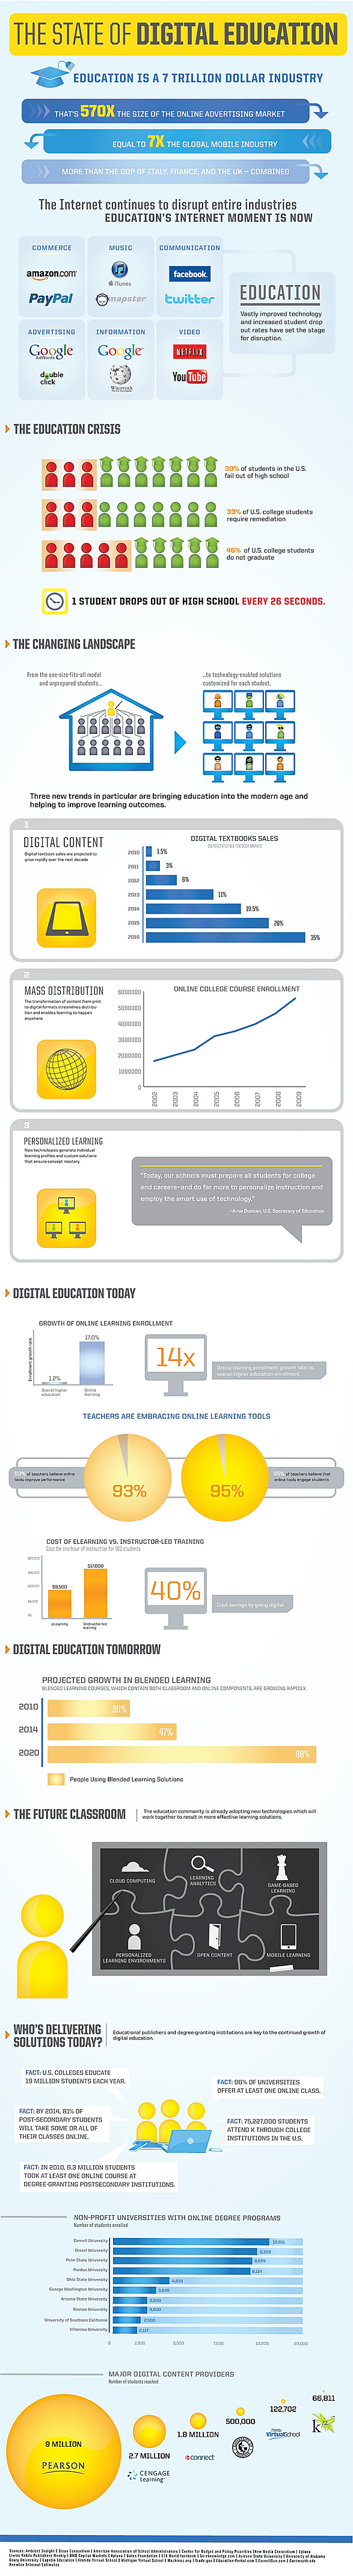 The State of Digital Education -- from Knewton.com and Ambient Insight in August 2011